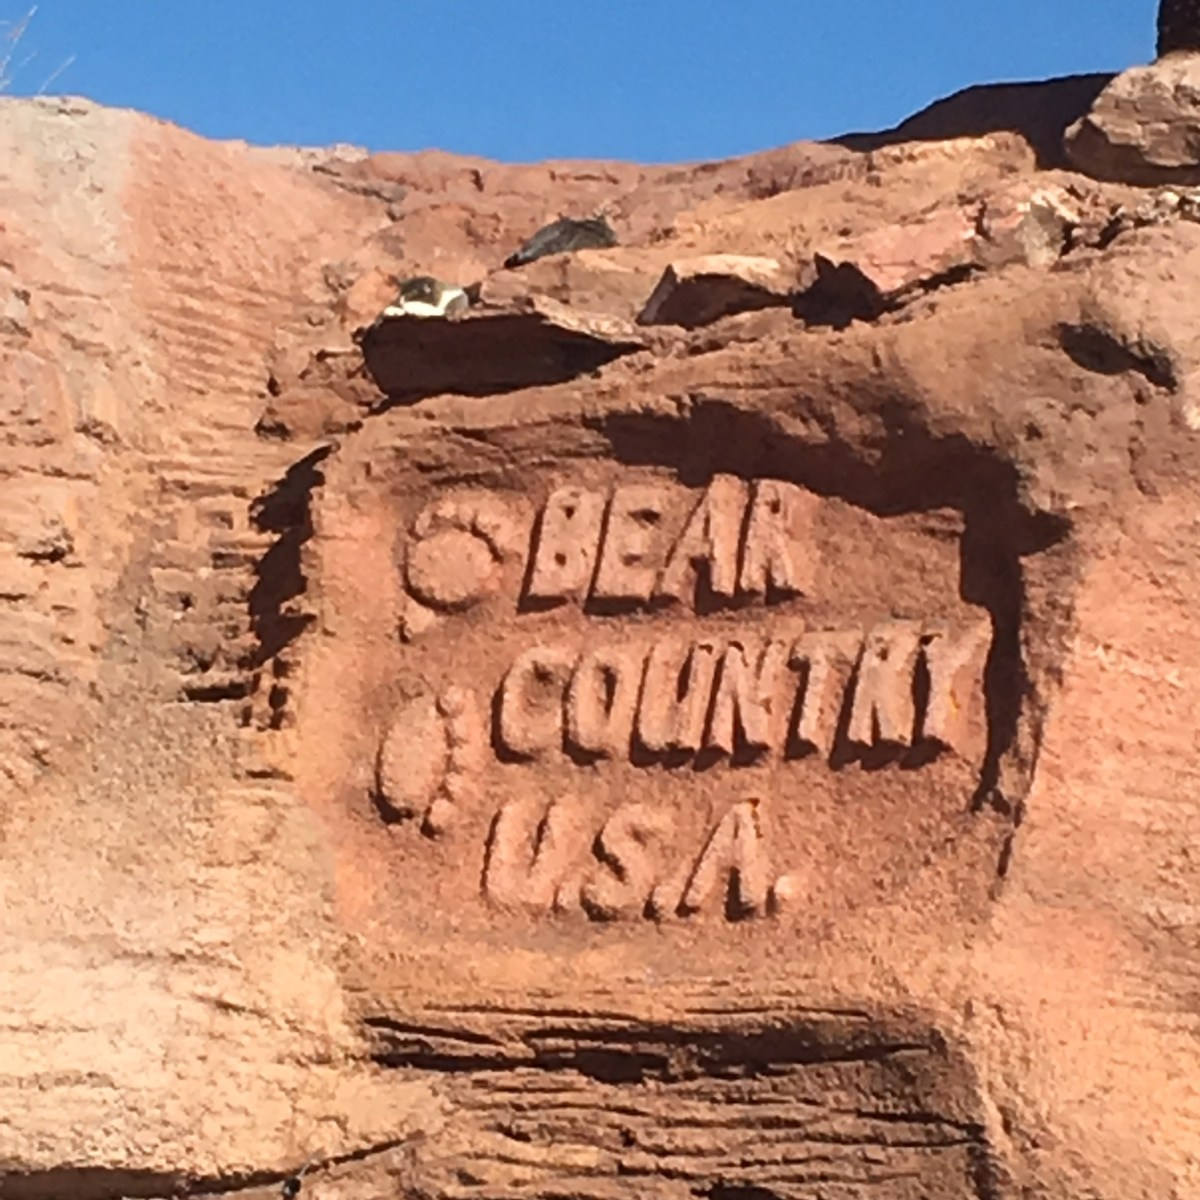 Bear Country USA Sign